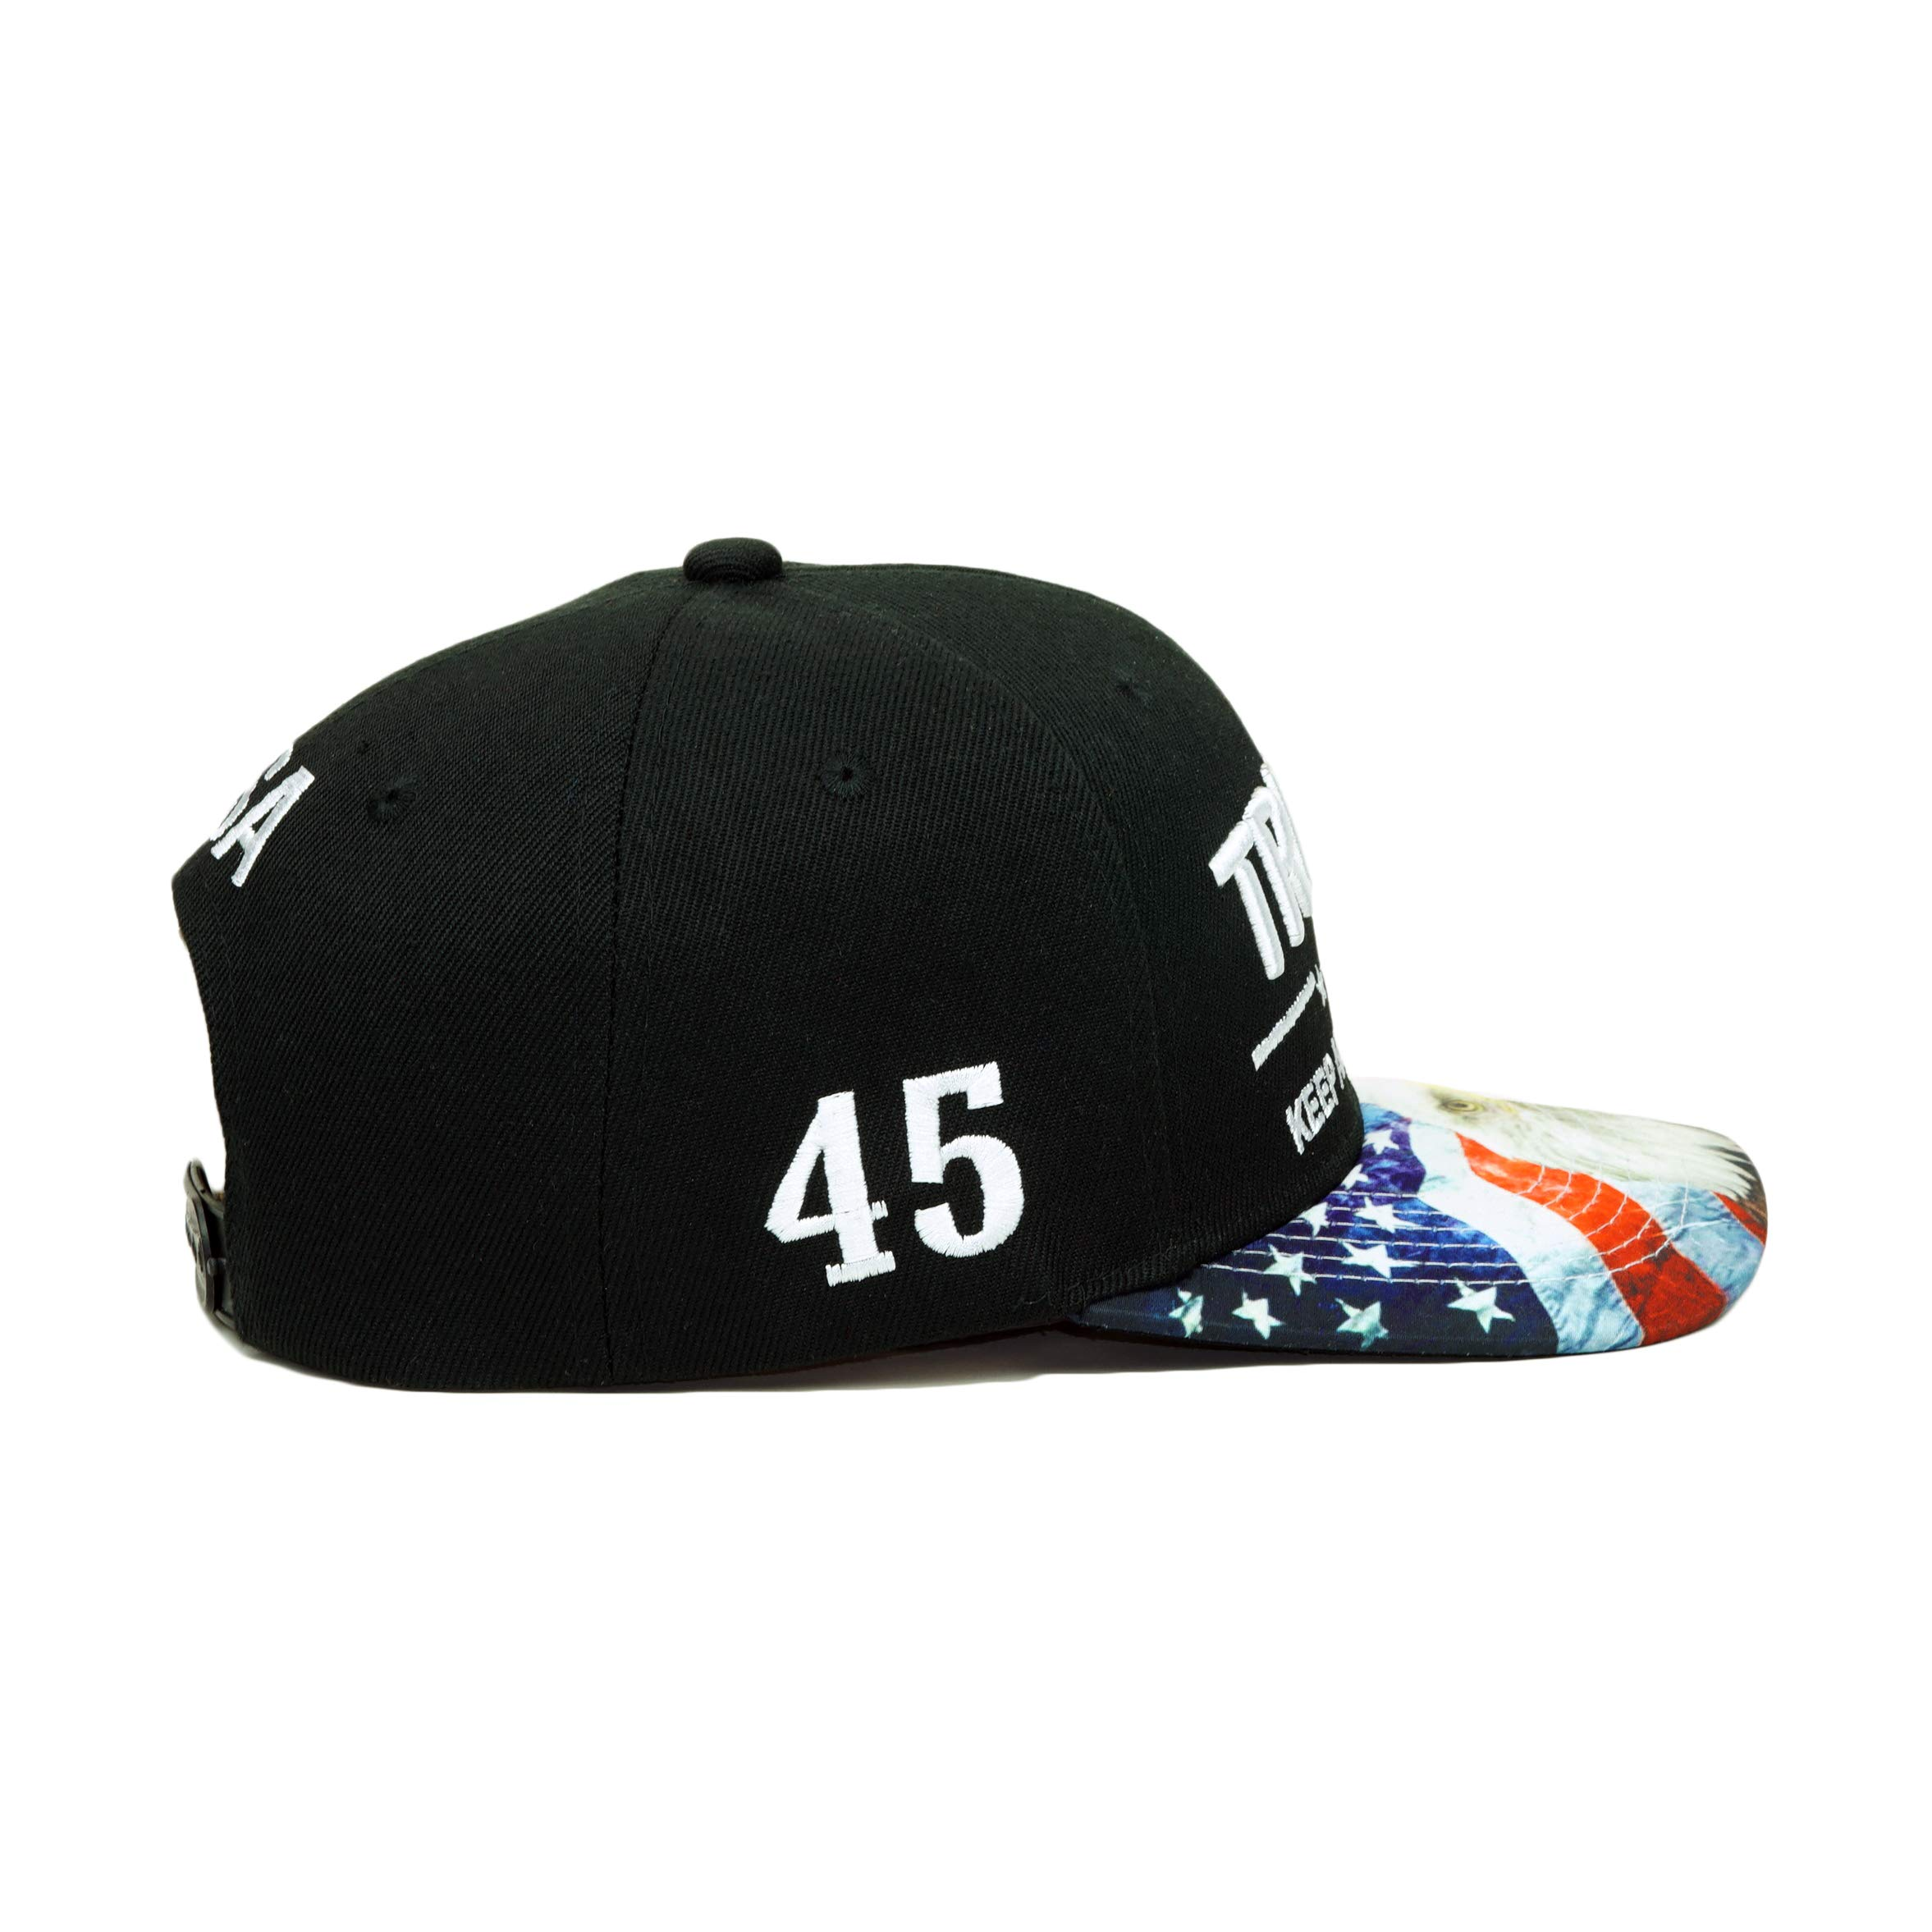 e455cb687 Shop Home » Products » Trump Keep America Great! Embroidery Hat Adjustable  45 President USA Eagle Baseball Cap. Previous; Next